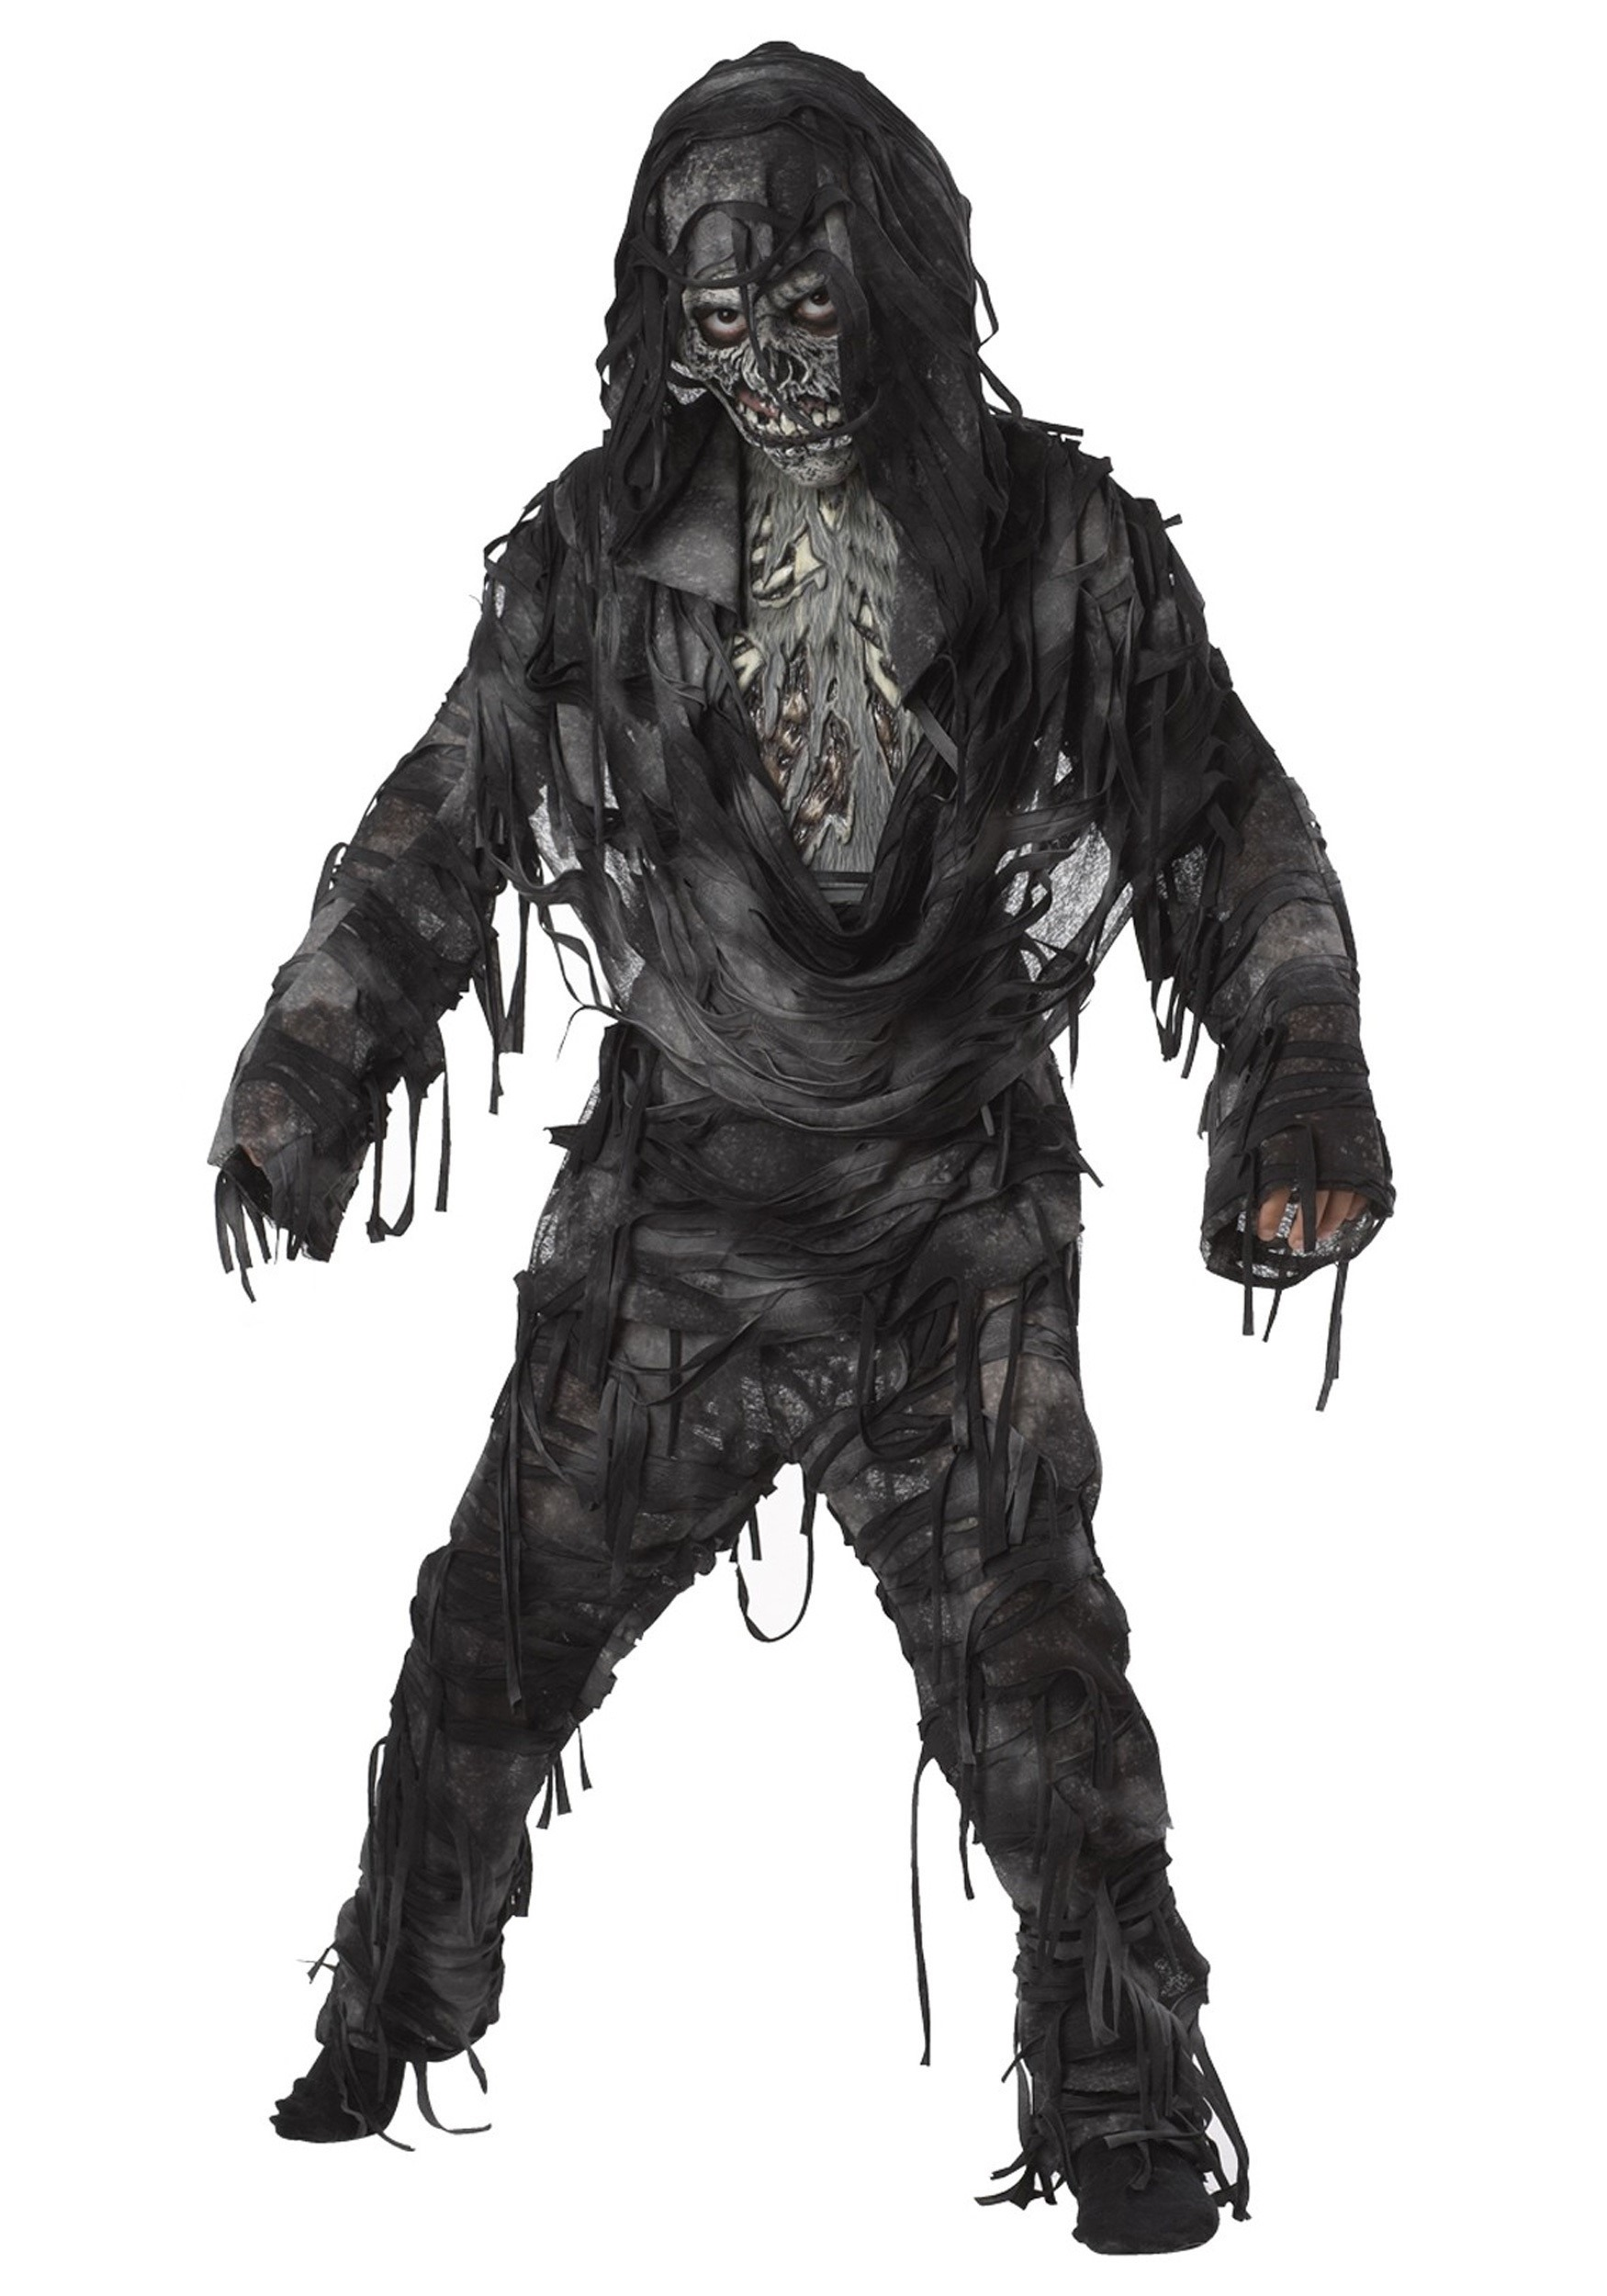 Living Dead Zombie Costume for Kids | Scary Halloween Costume